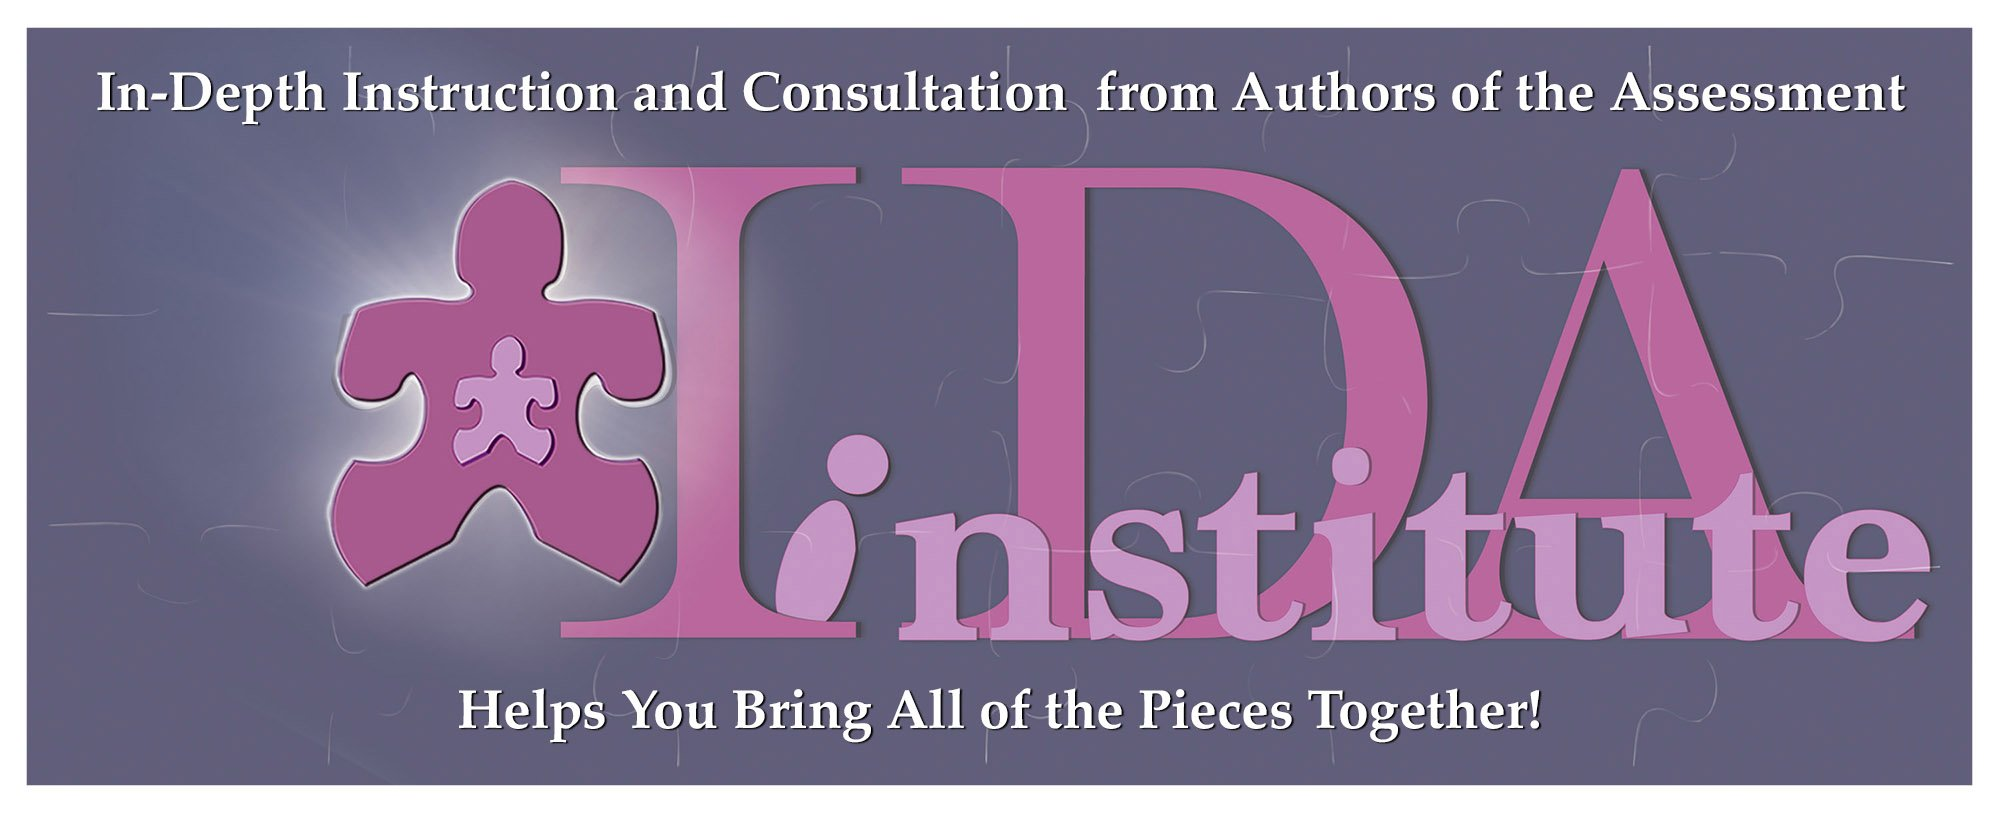 Comprehensive Instruction and Consultation from authors of the IDA helps practitioners bring all of the pieces together.